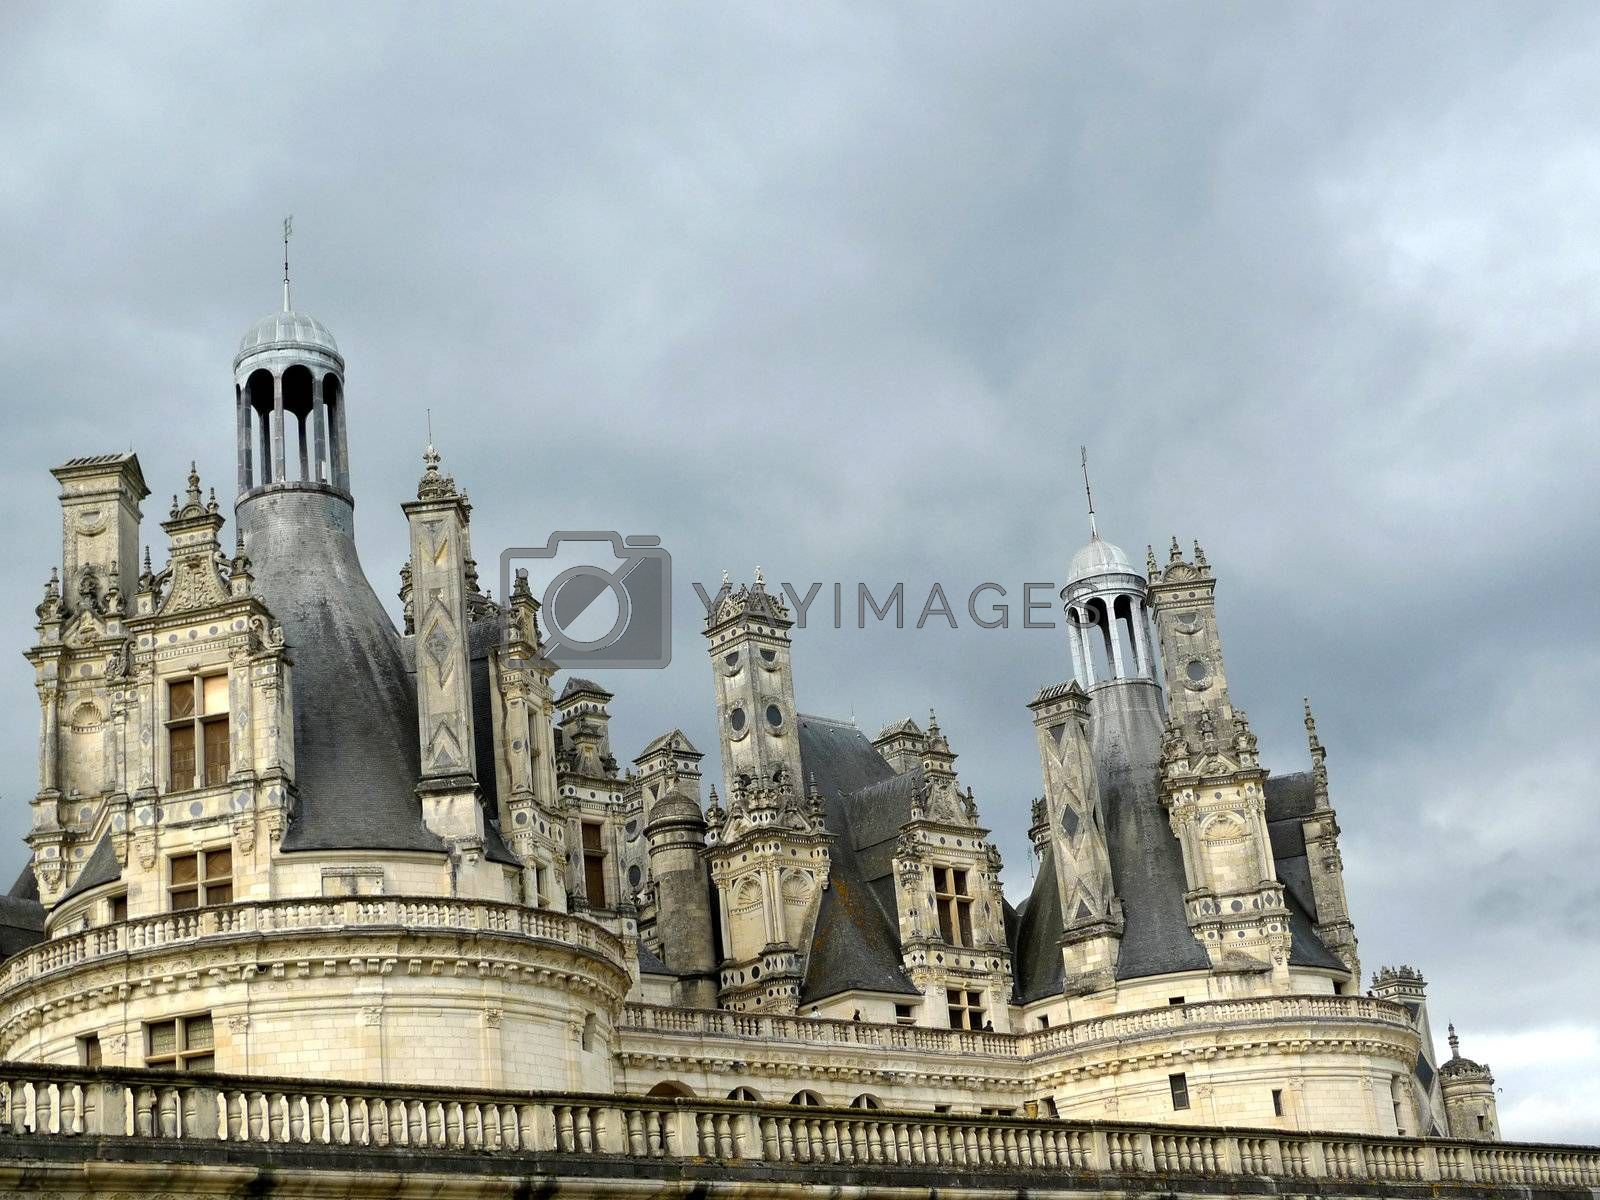 rooftop o f a chateau in france